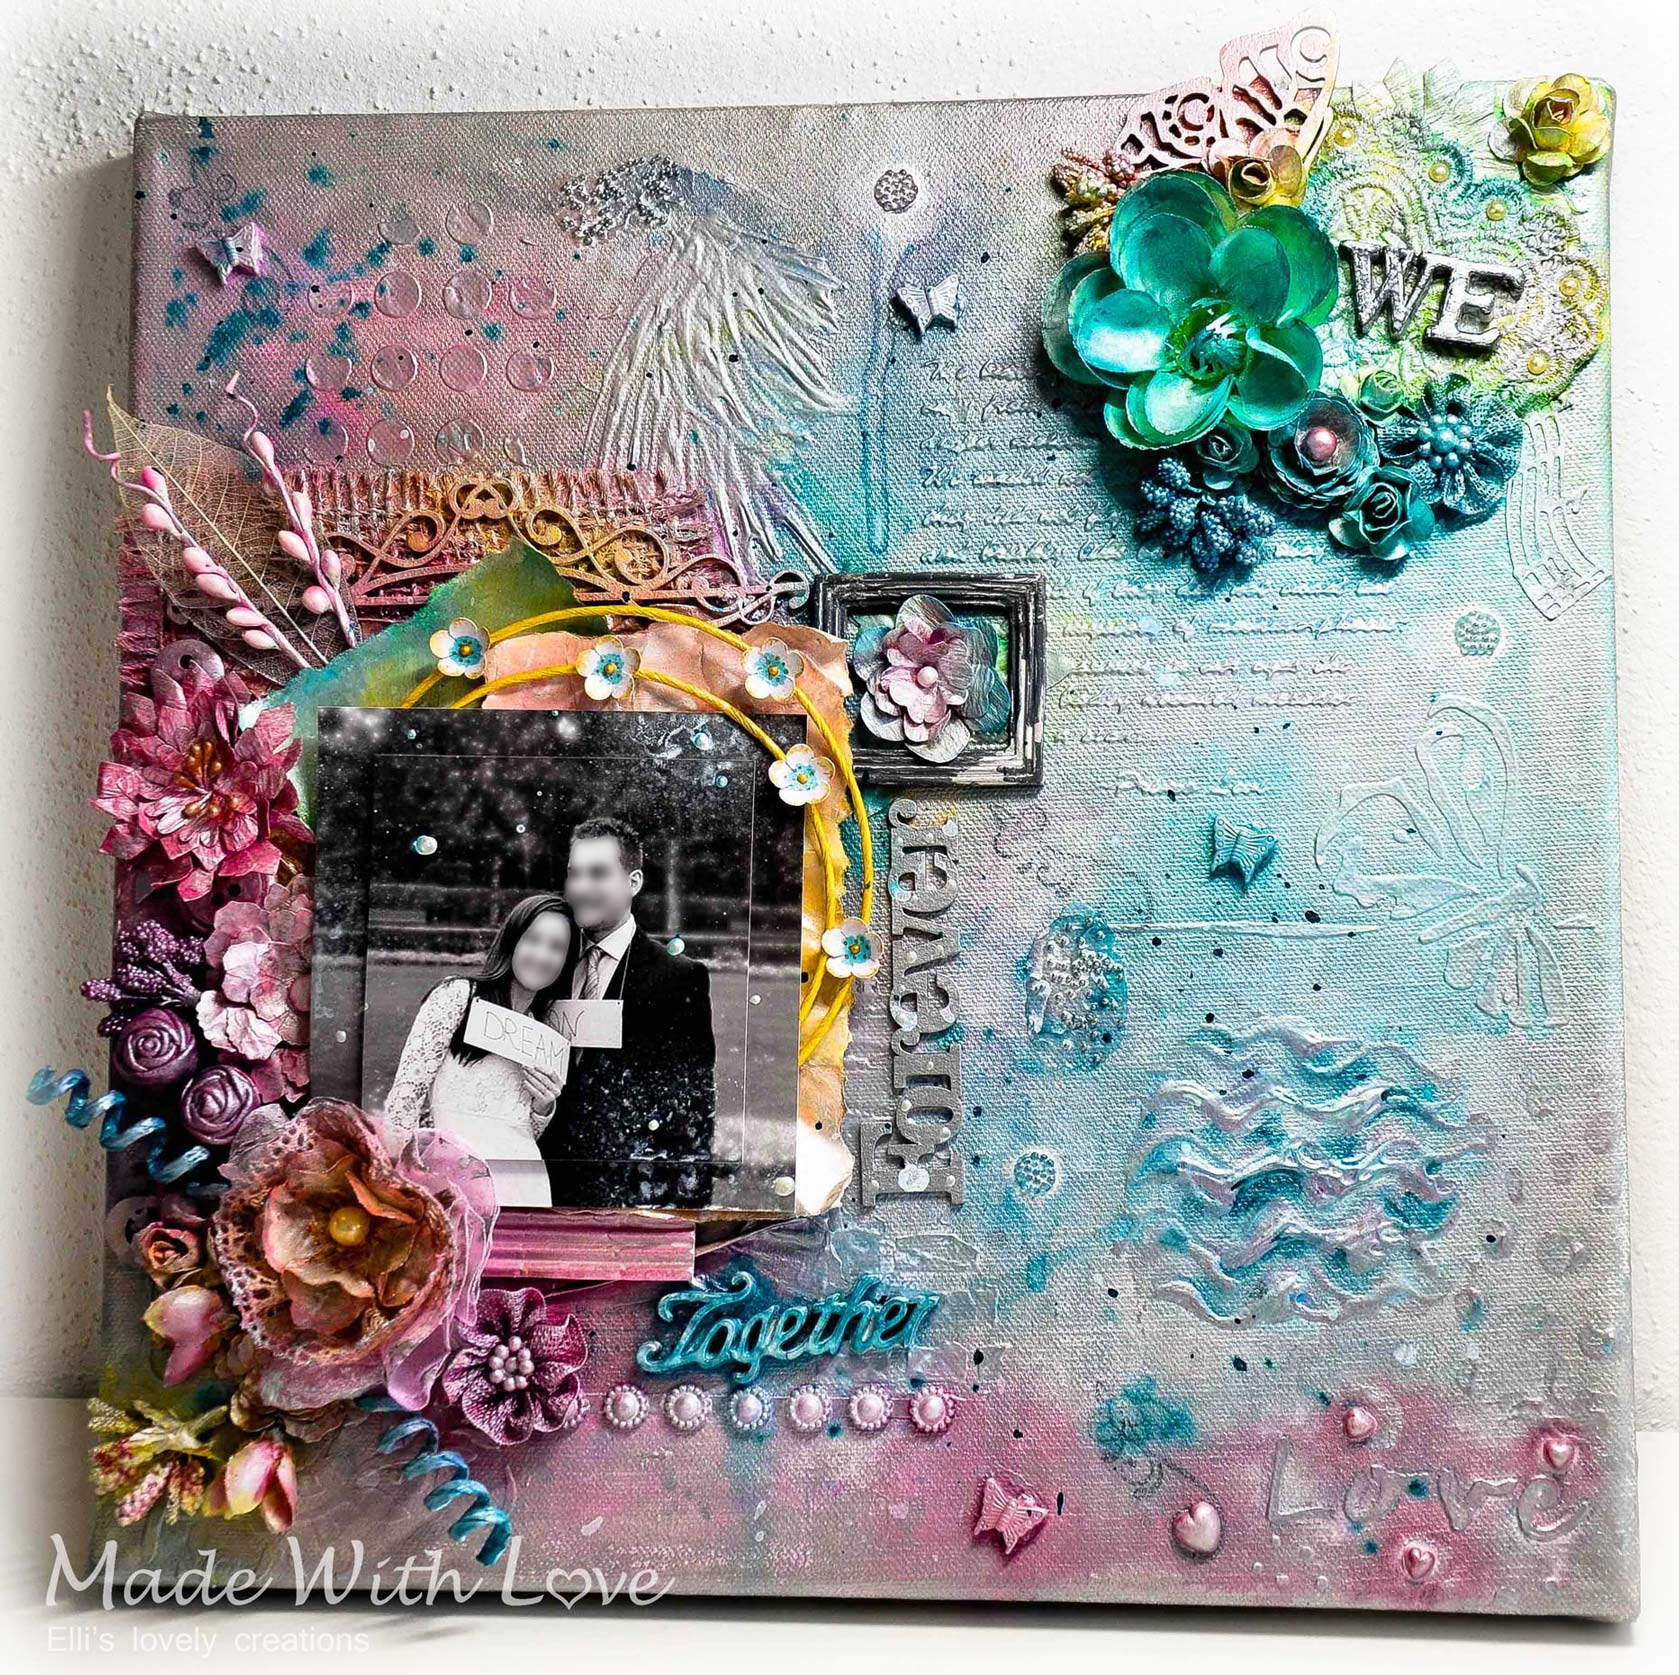 Together Forever: Mixed Media Canvas as a Wedding Gift